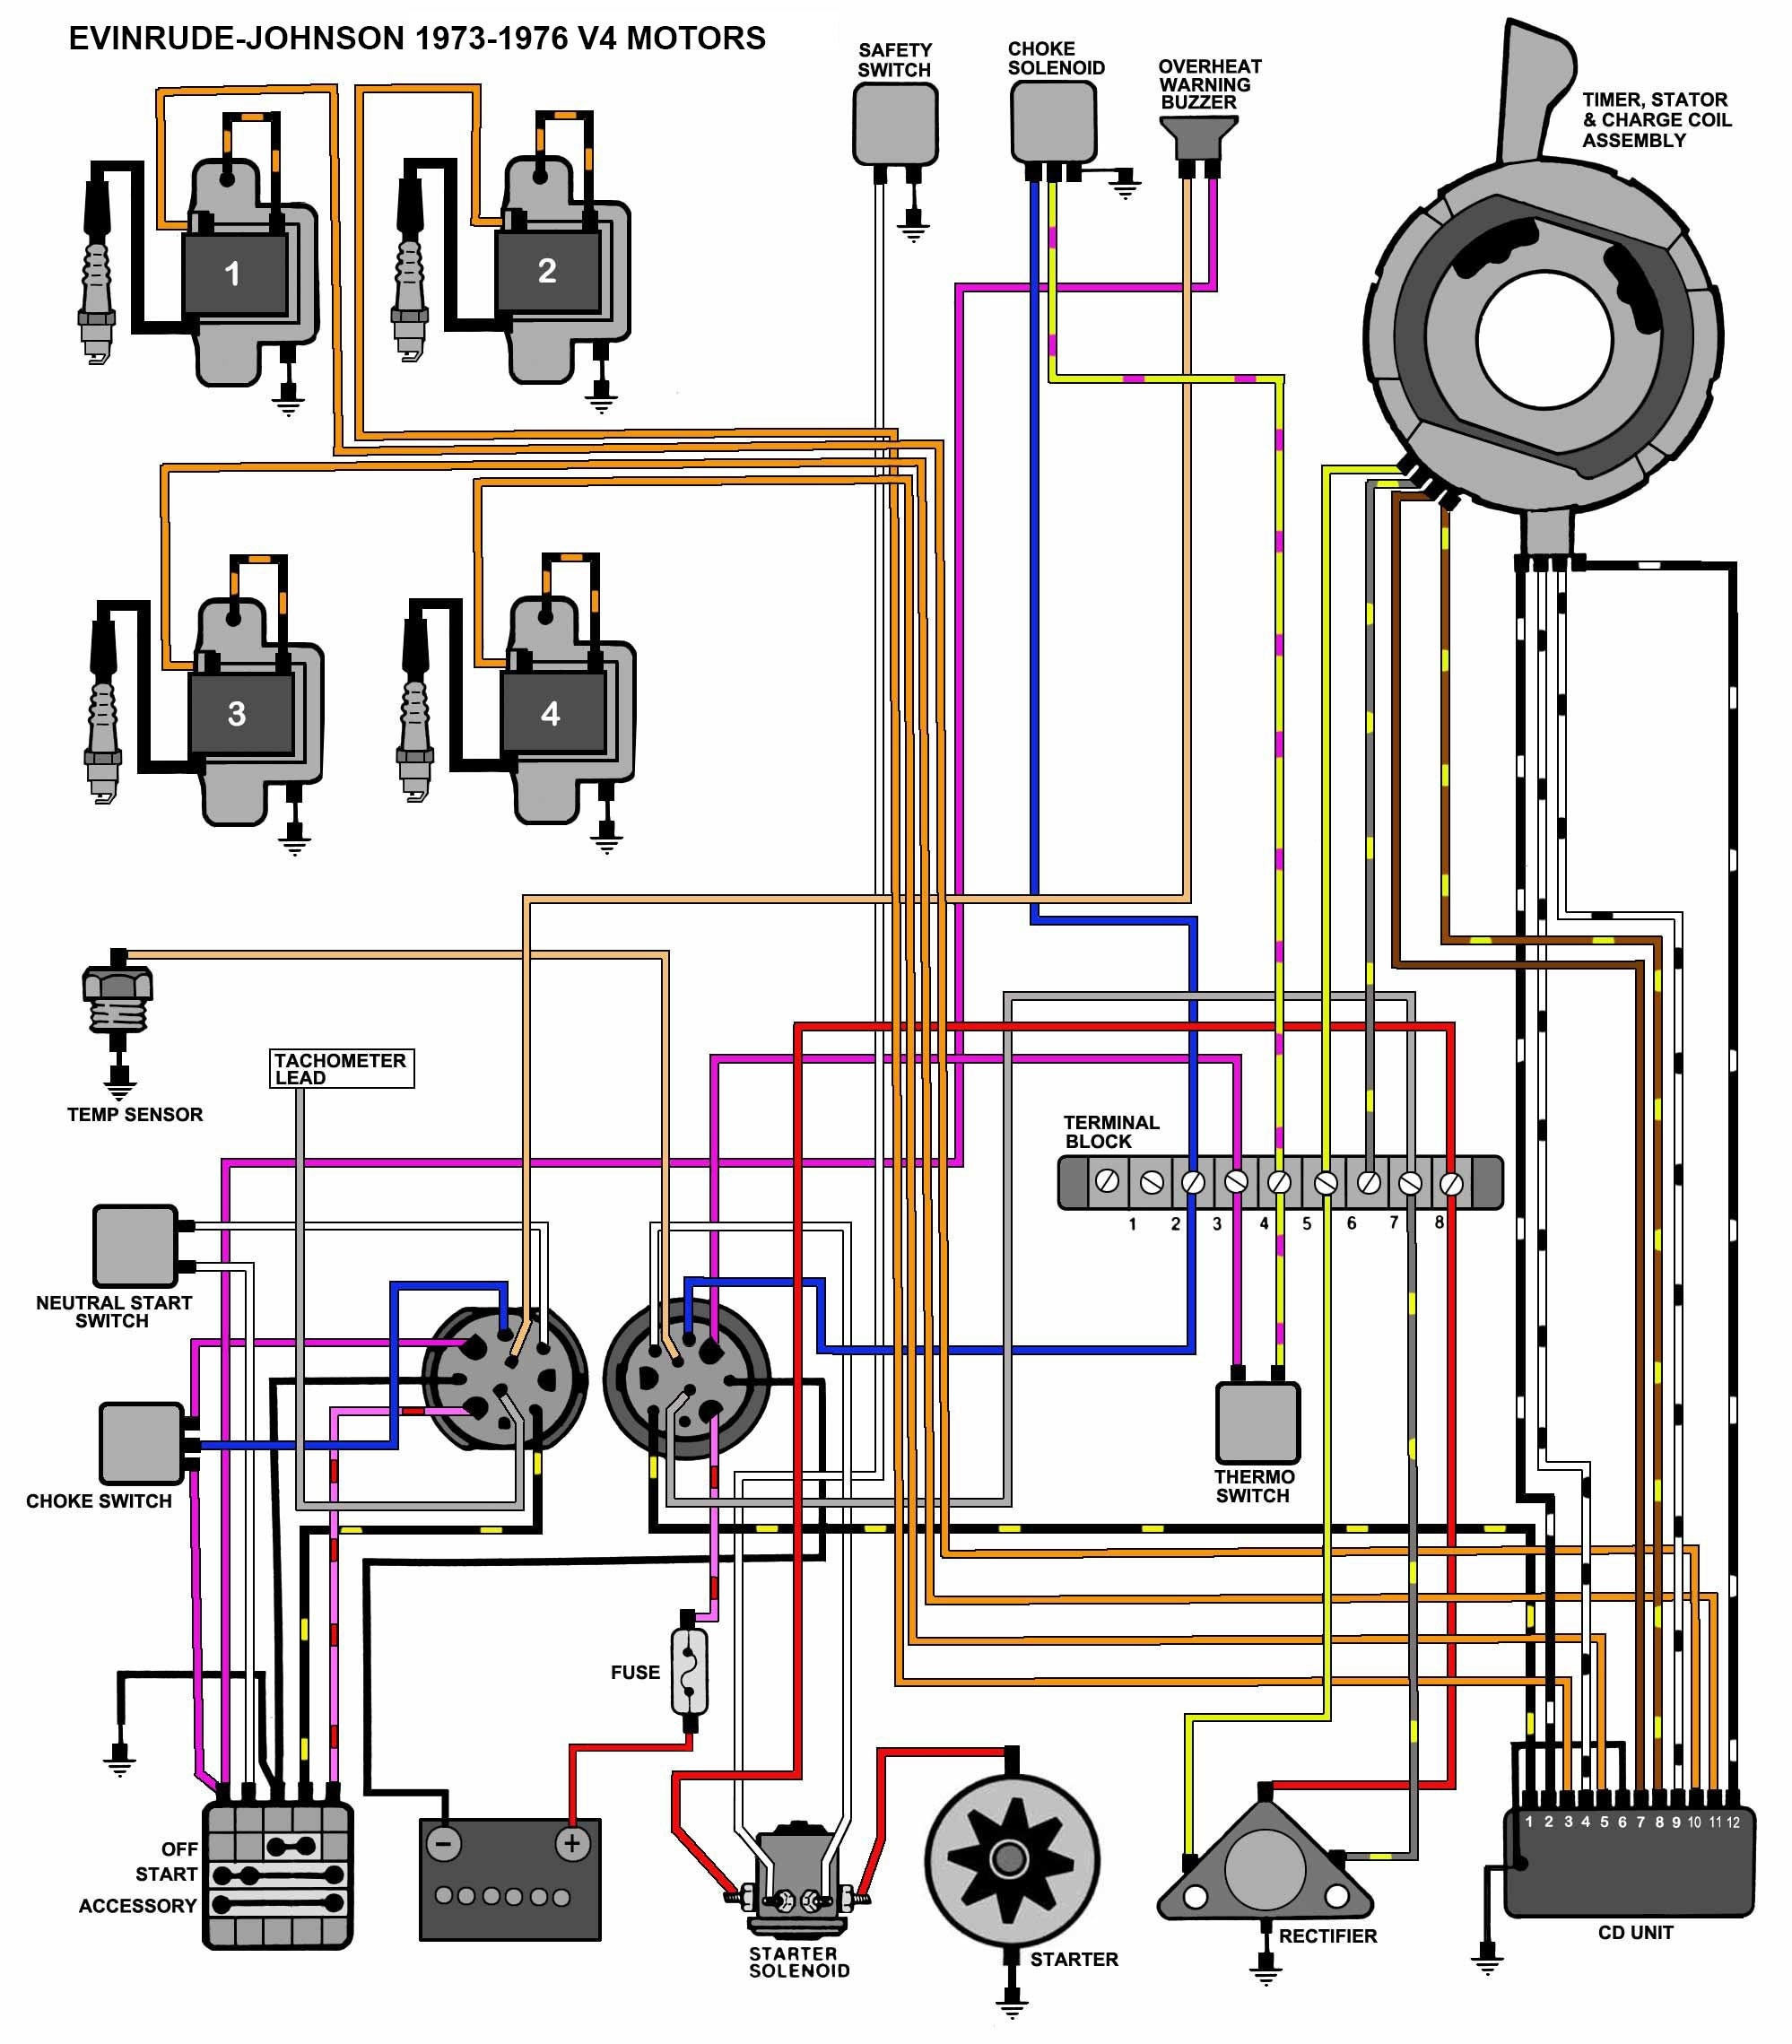 wiring diagram for mercury ignition switch wiring diagram for boat ignition switch